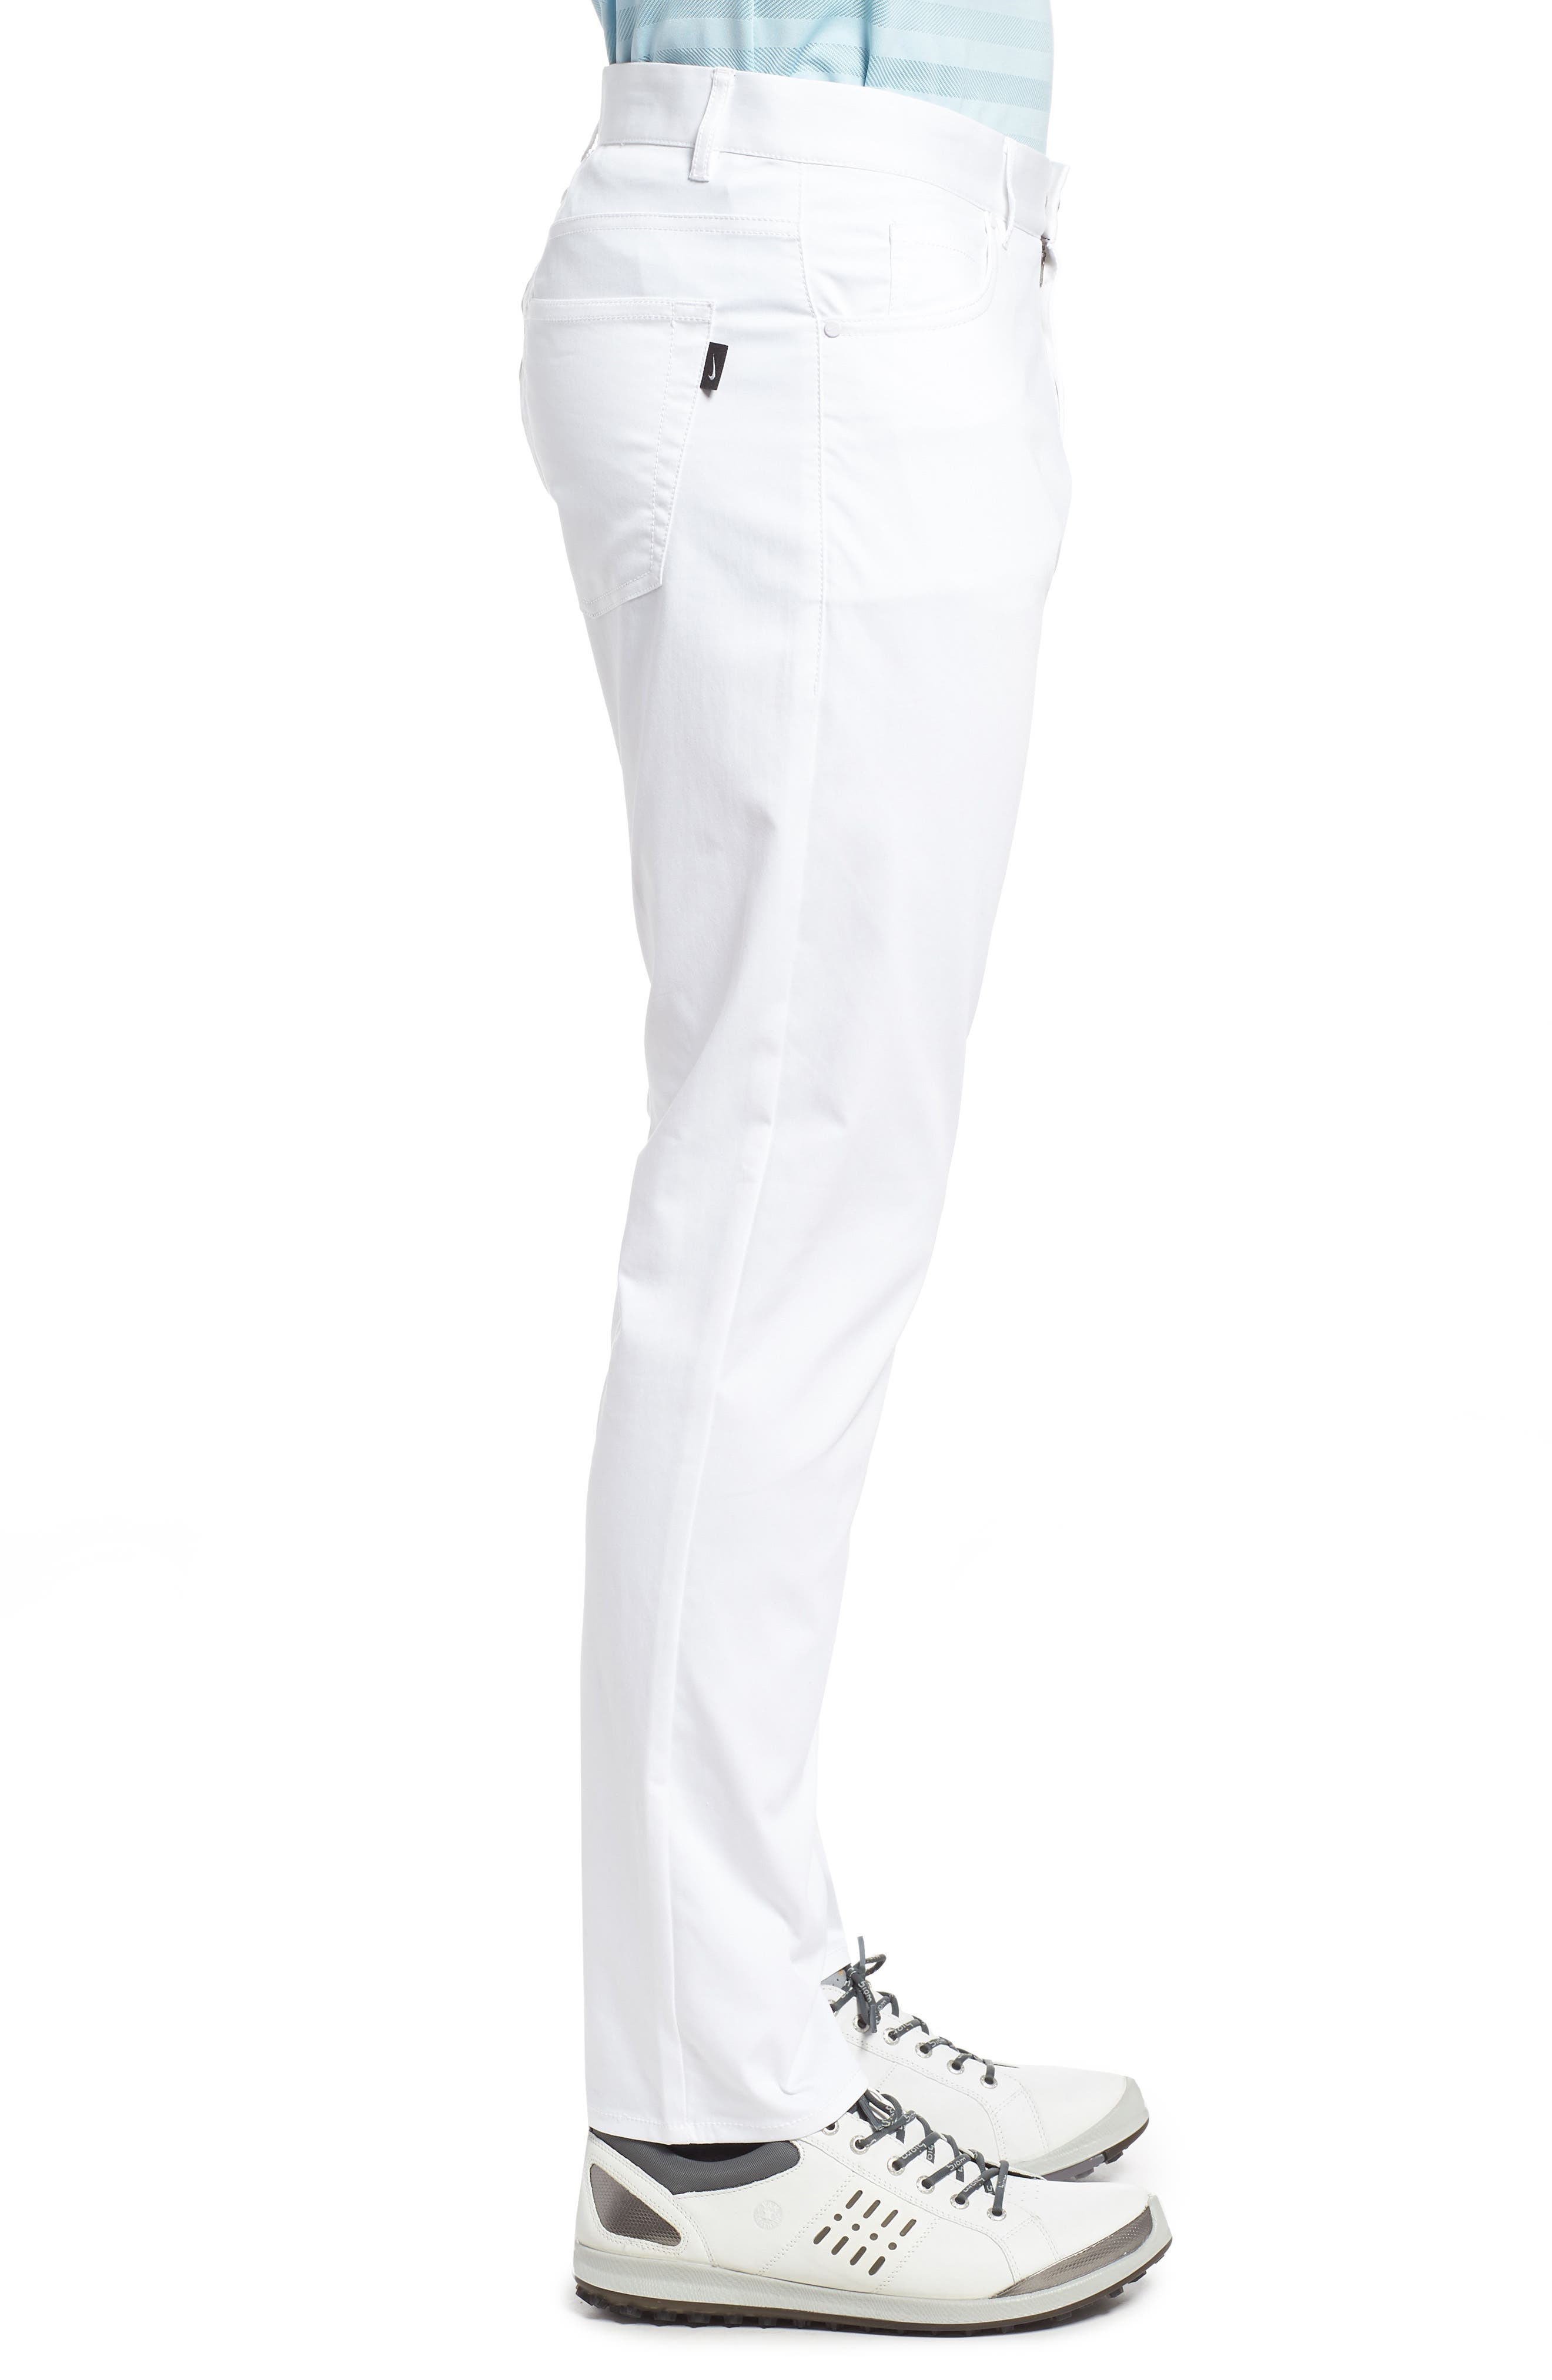 Dry Flex Slim Fit Golf Pants,                             Alternate thumbnail 3, color,                             White/ White